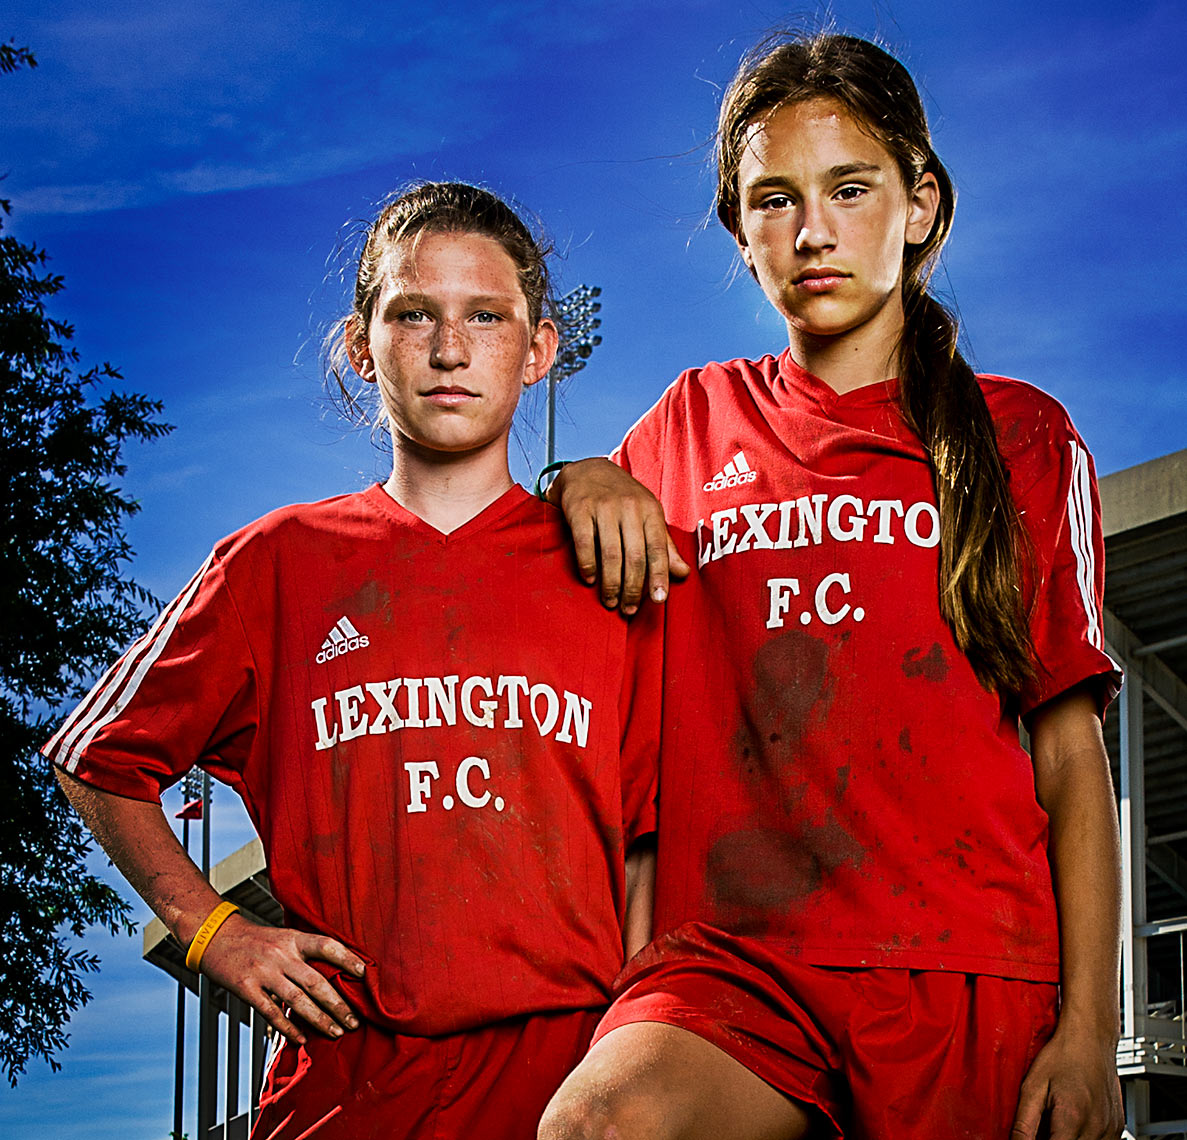 Girls Soccer in Lexington Kentucky